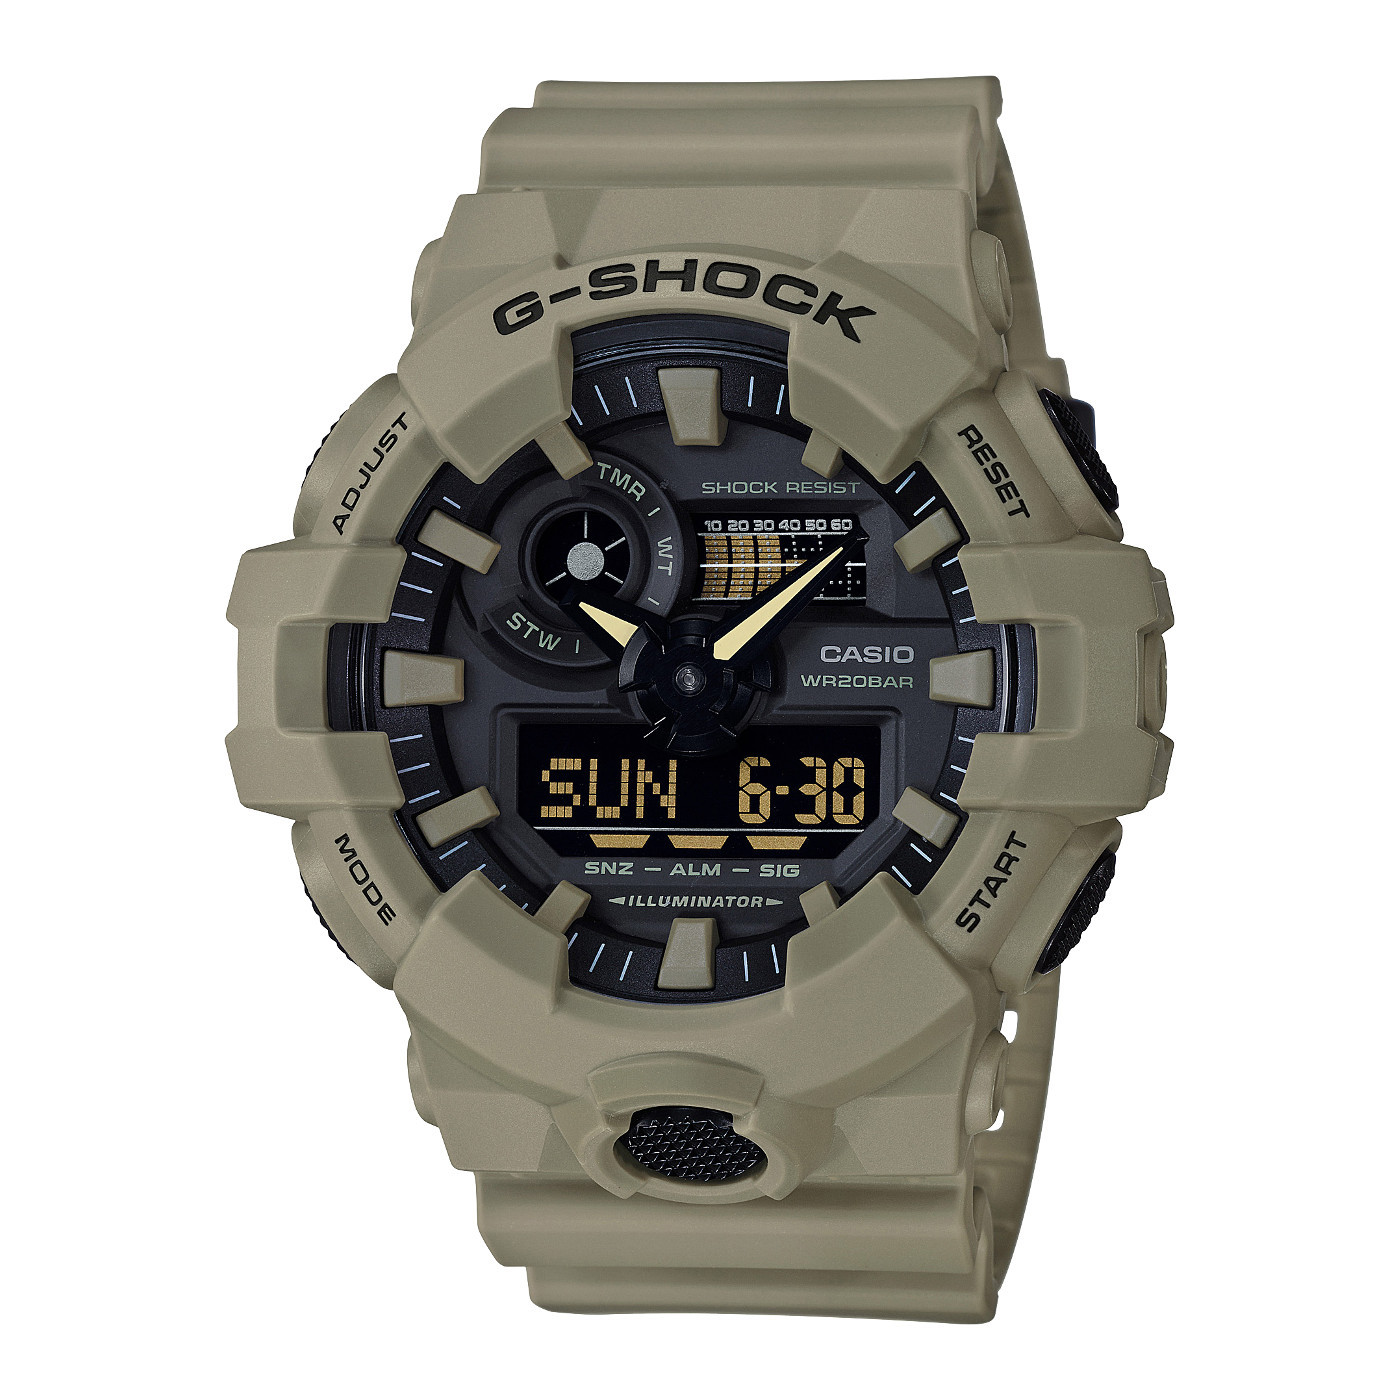 b8e82b34aa648 G-Shock Original watch GA-700UC-5AER - Watches